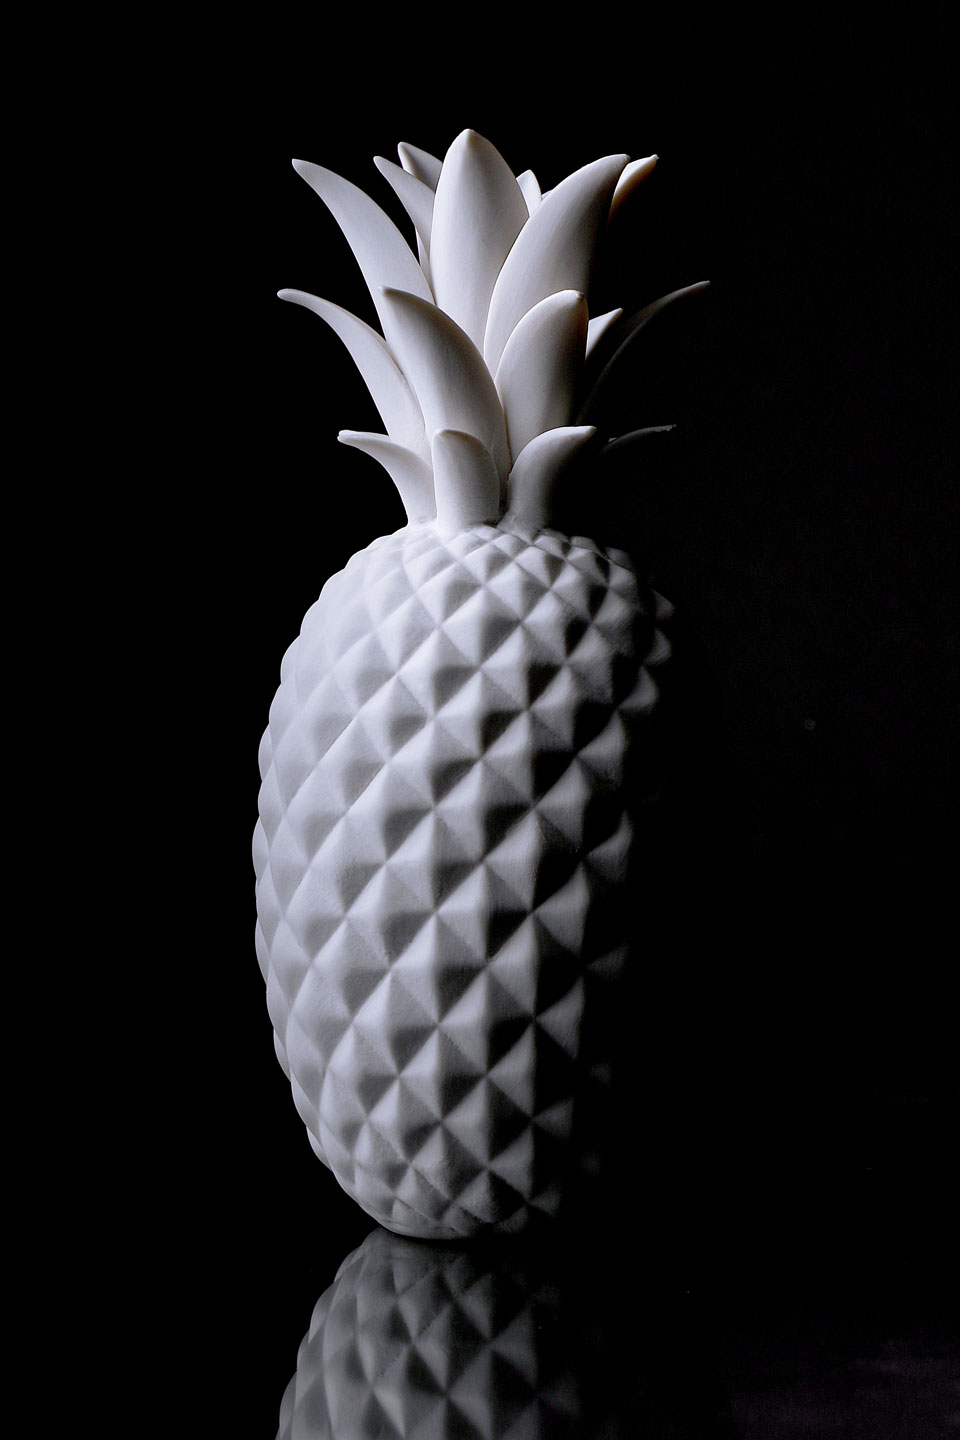 French Photographer Paris Accessories Porcelain Pineapple